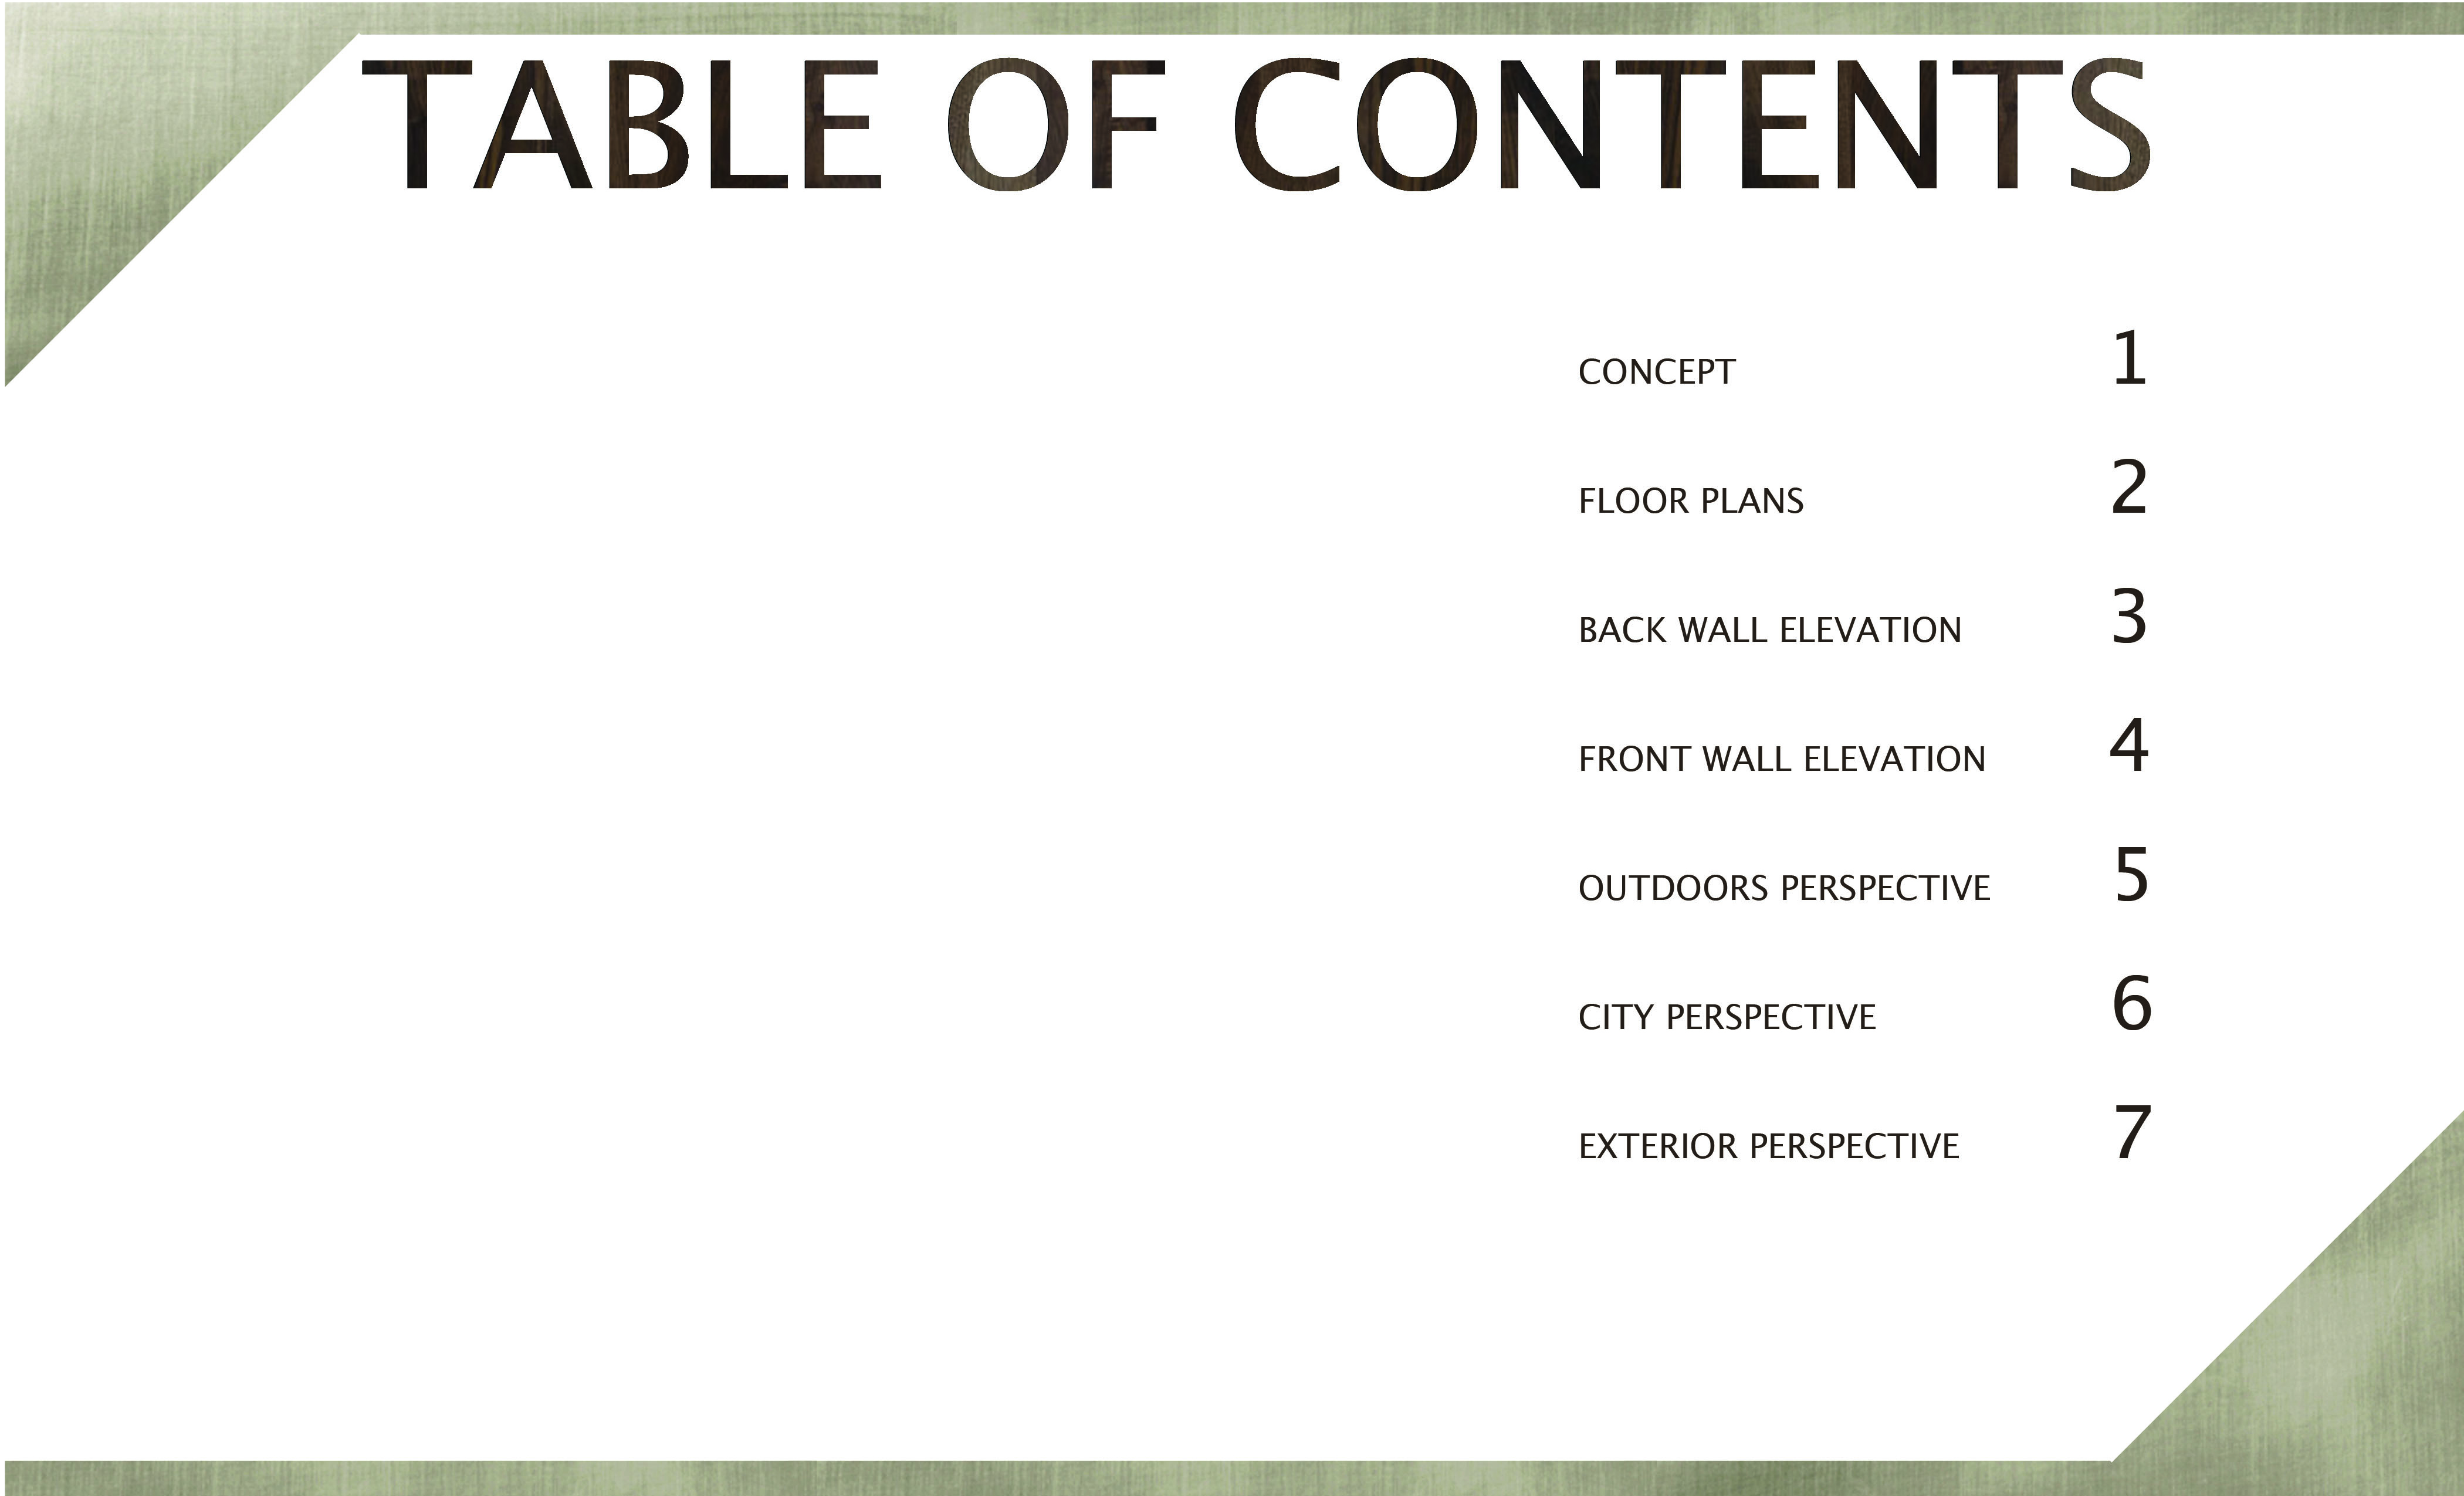 bonobos table of contents